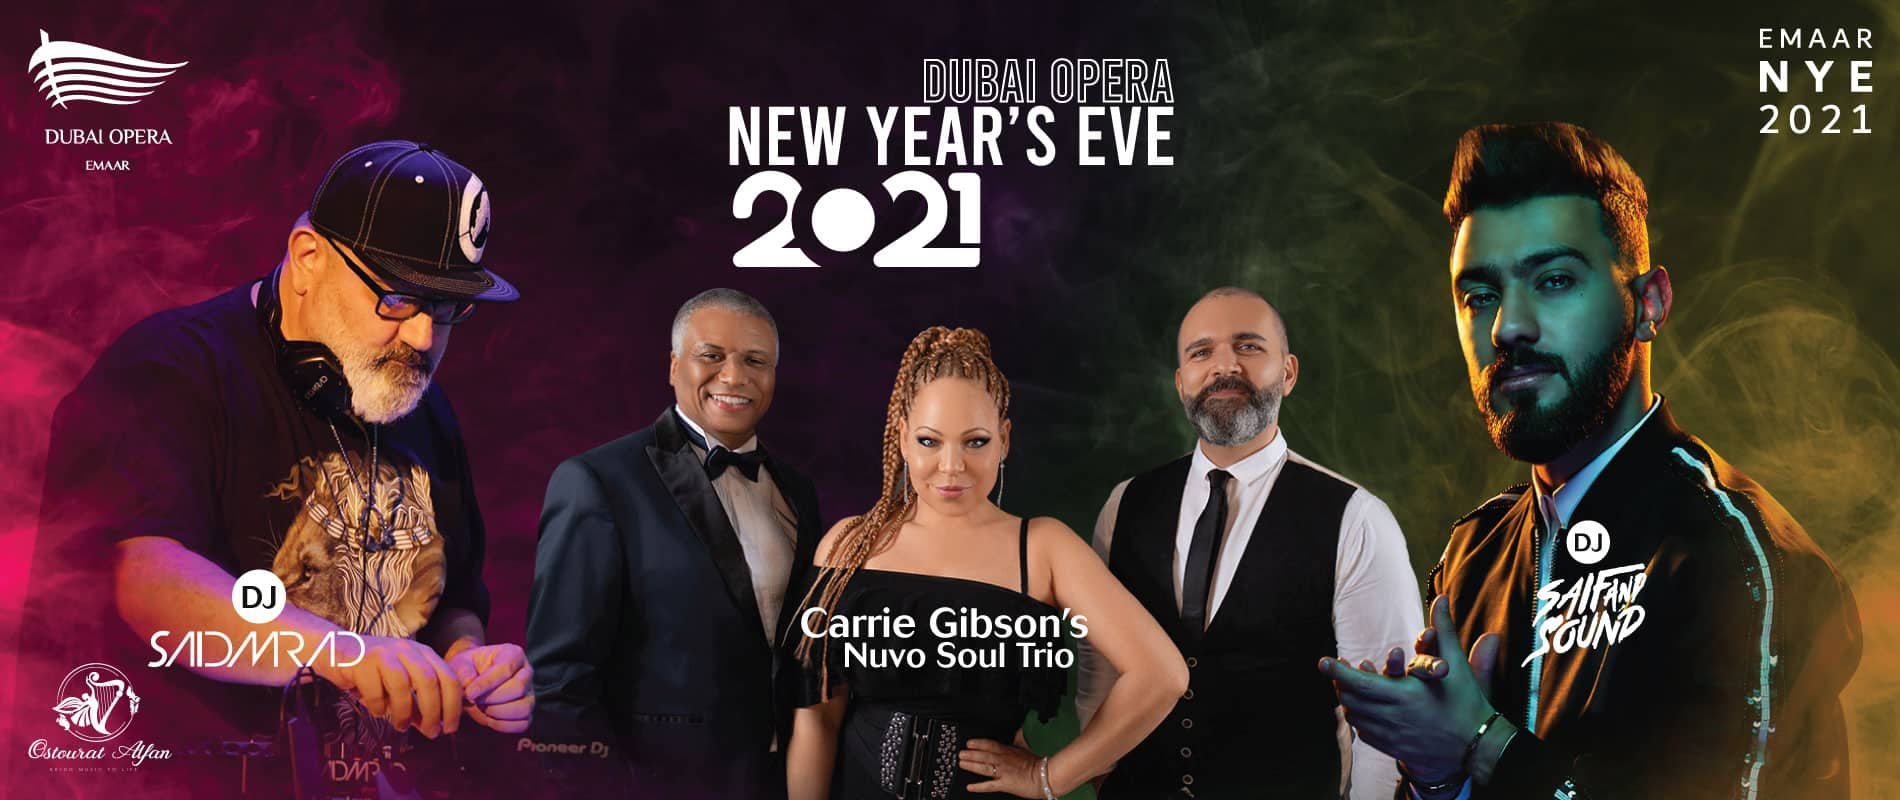 New Year's Eve 2021 at Dubai Opera